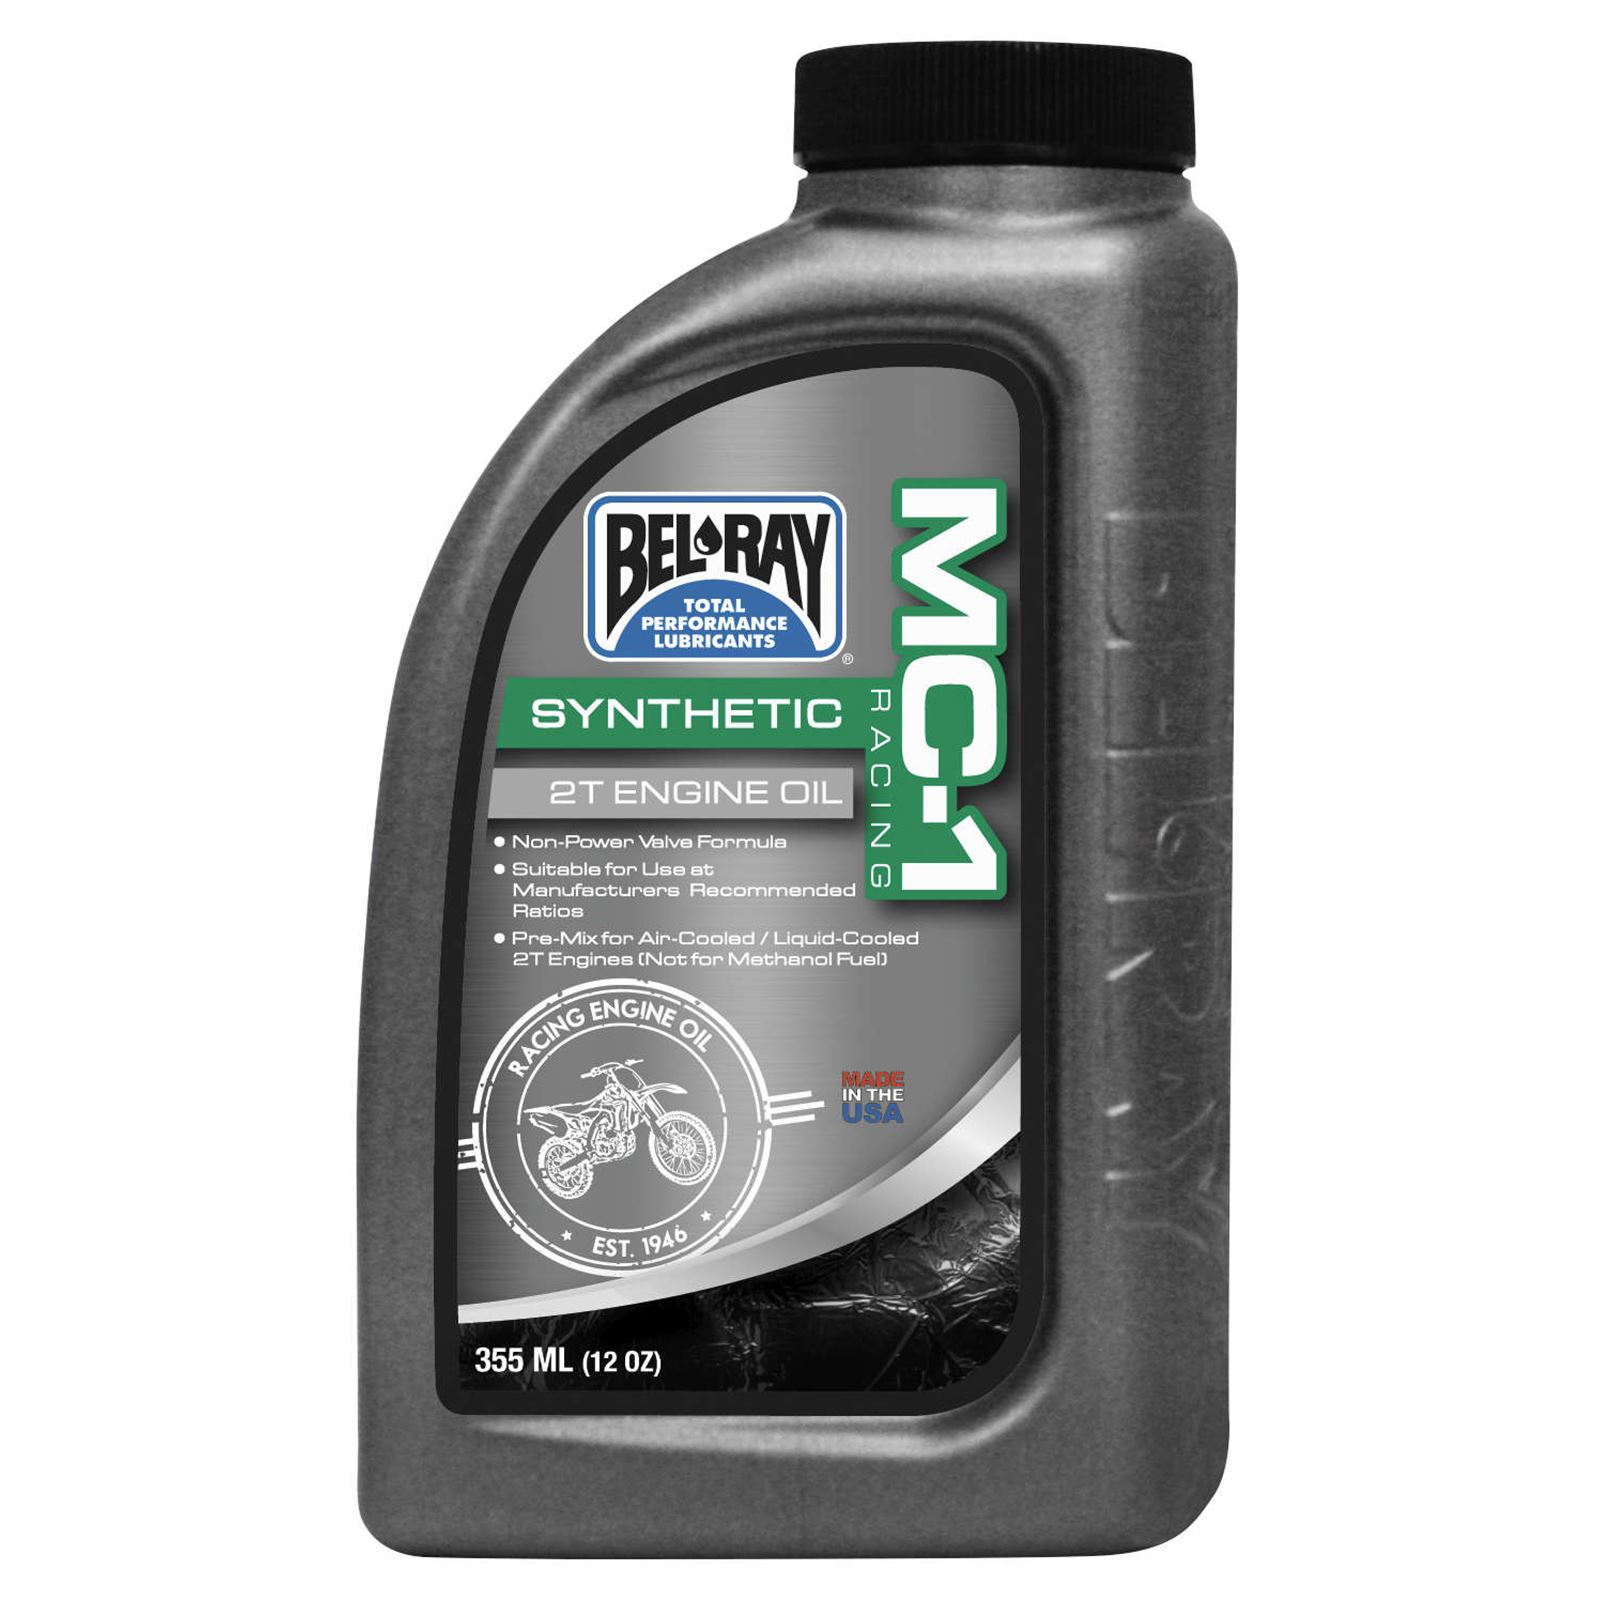 Bel-Ray MC-1 Racing Full Synthetic 2T Engine Oil